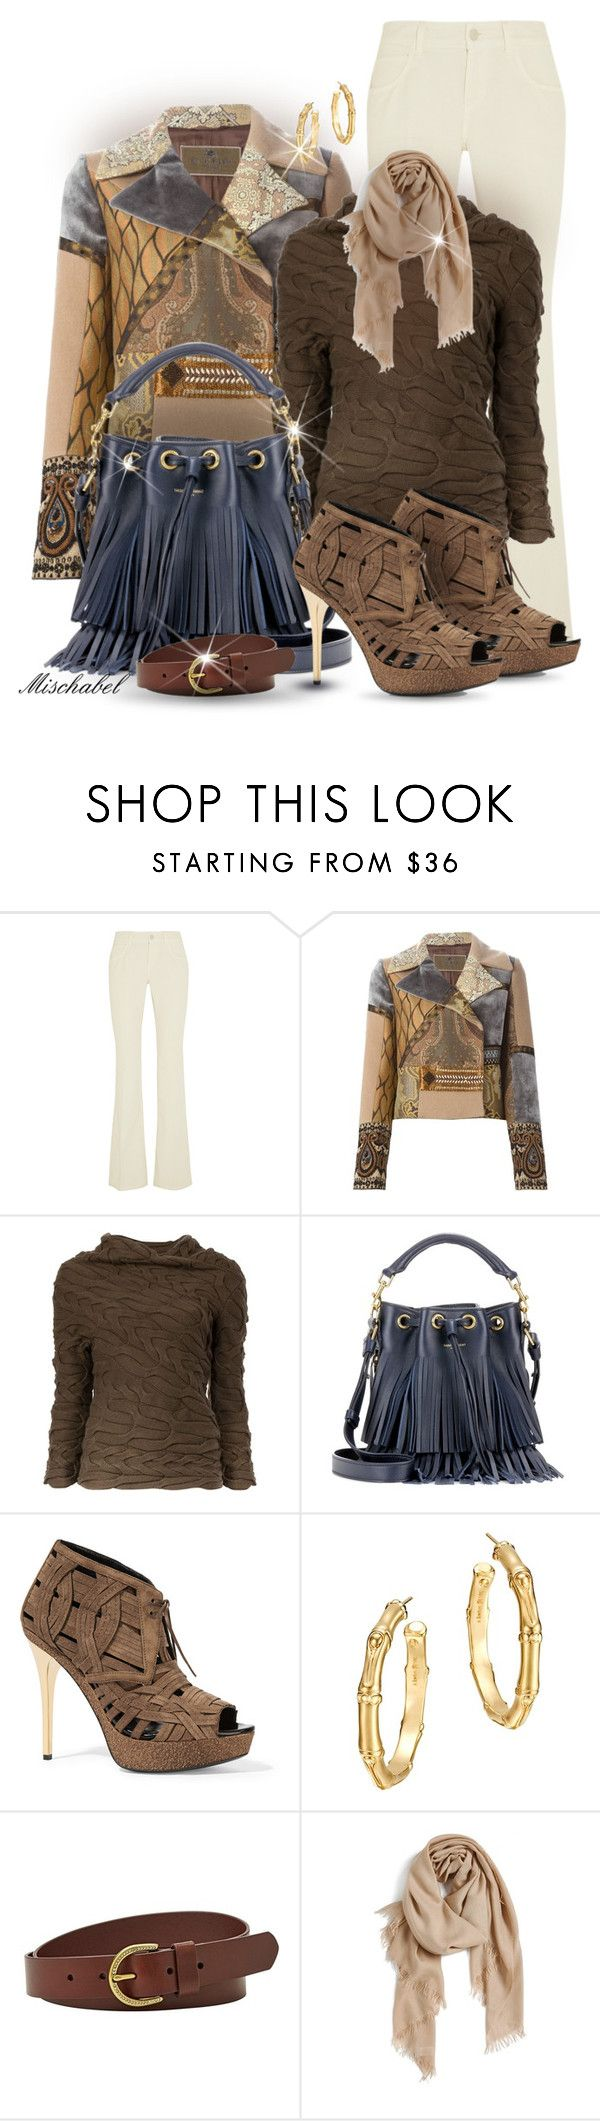 """Winter Shades - Patchwork Jacket & Woven Booties (147)"" by mischabel ❤ liked on Polyvore featuring Gucci, Etro, Alexander McQueen, Yves Saint Laurent, Burberry, John Hardy, FOSSIL and Nordstrom"